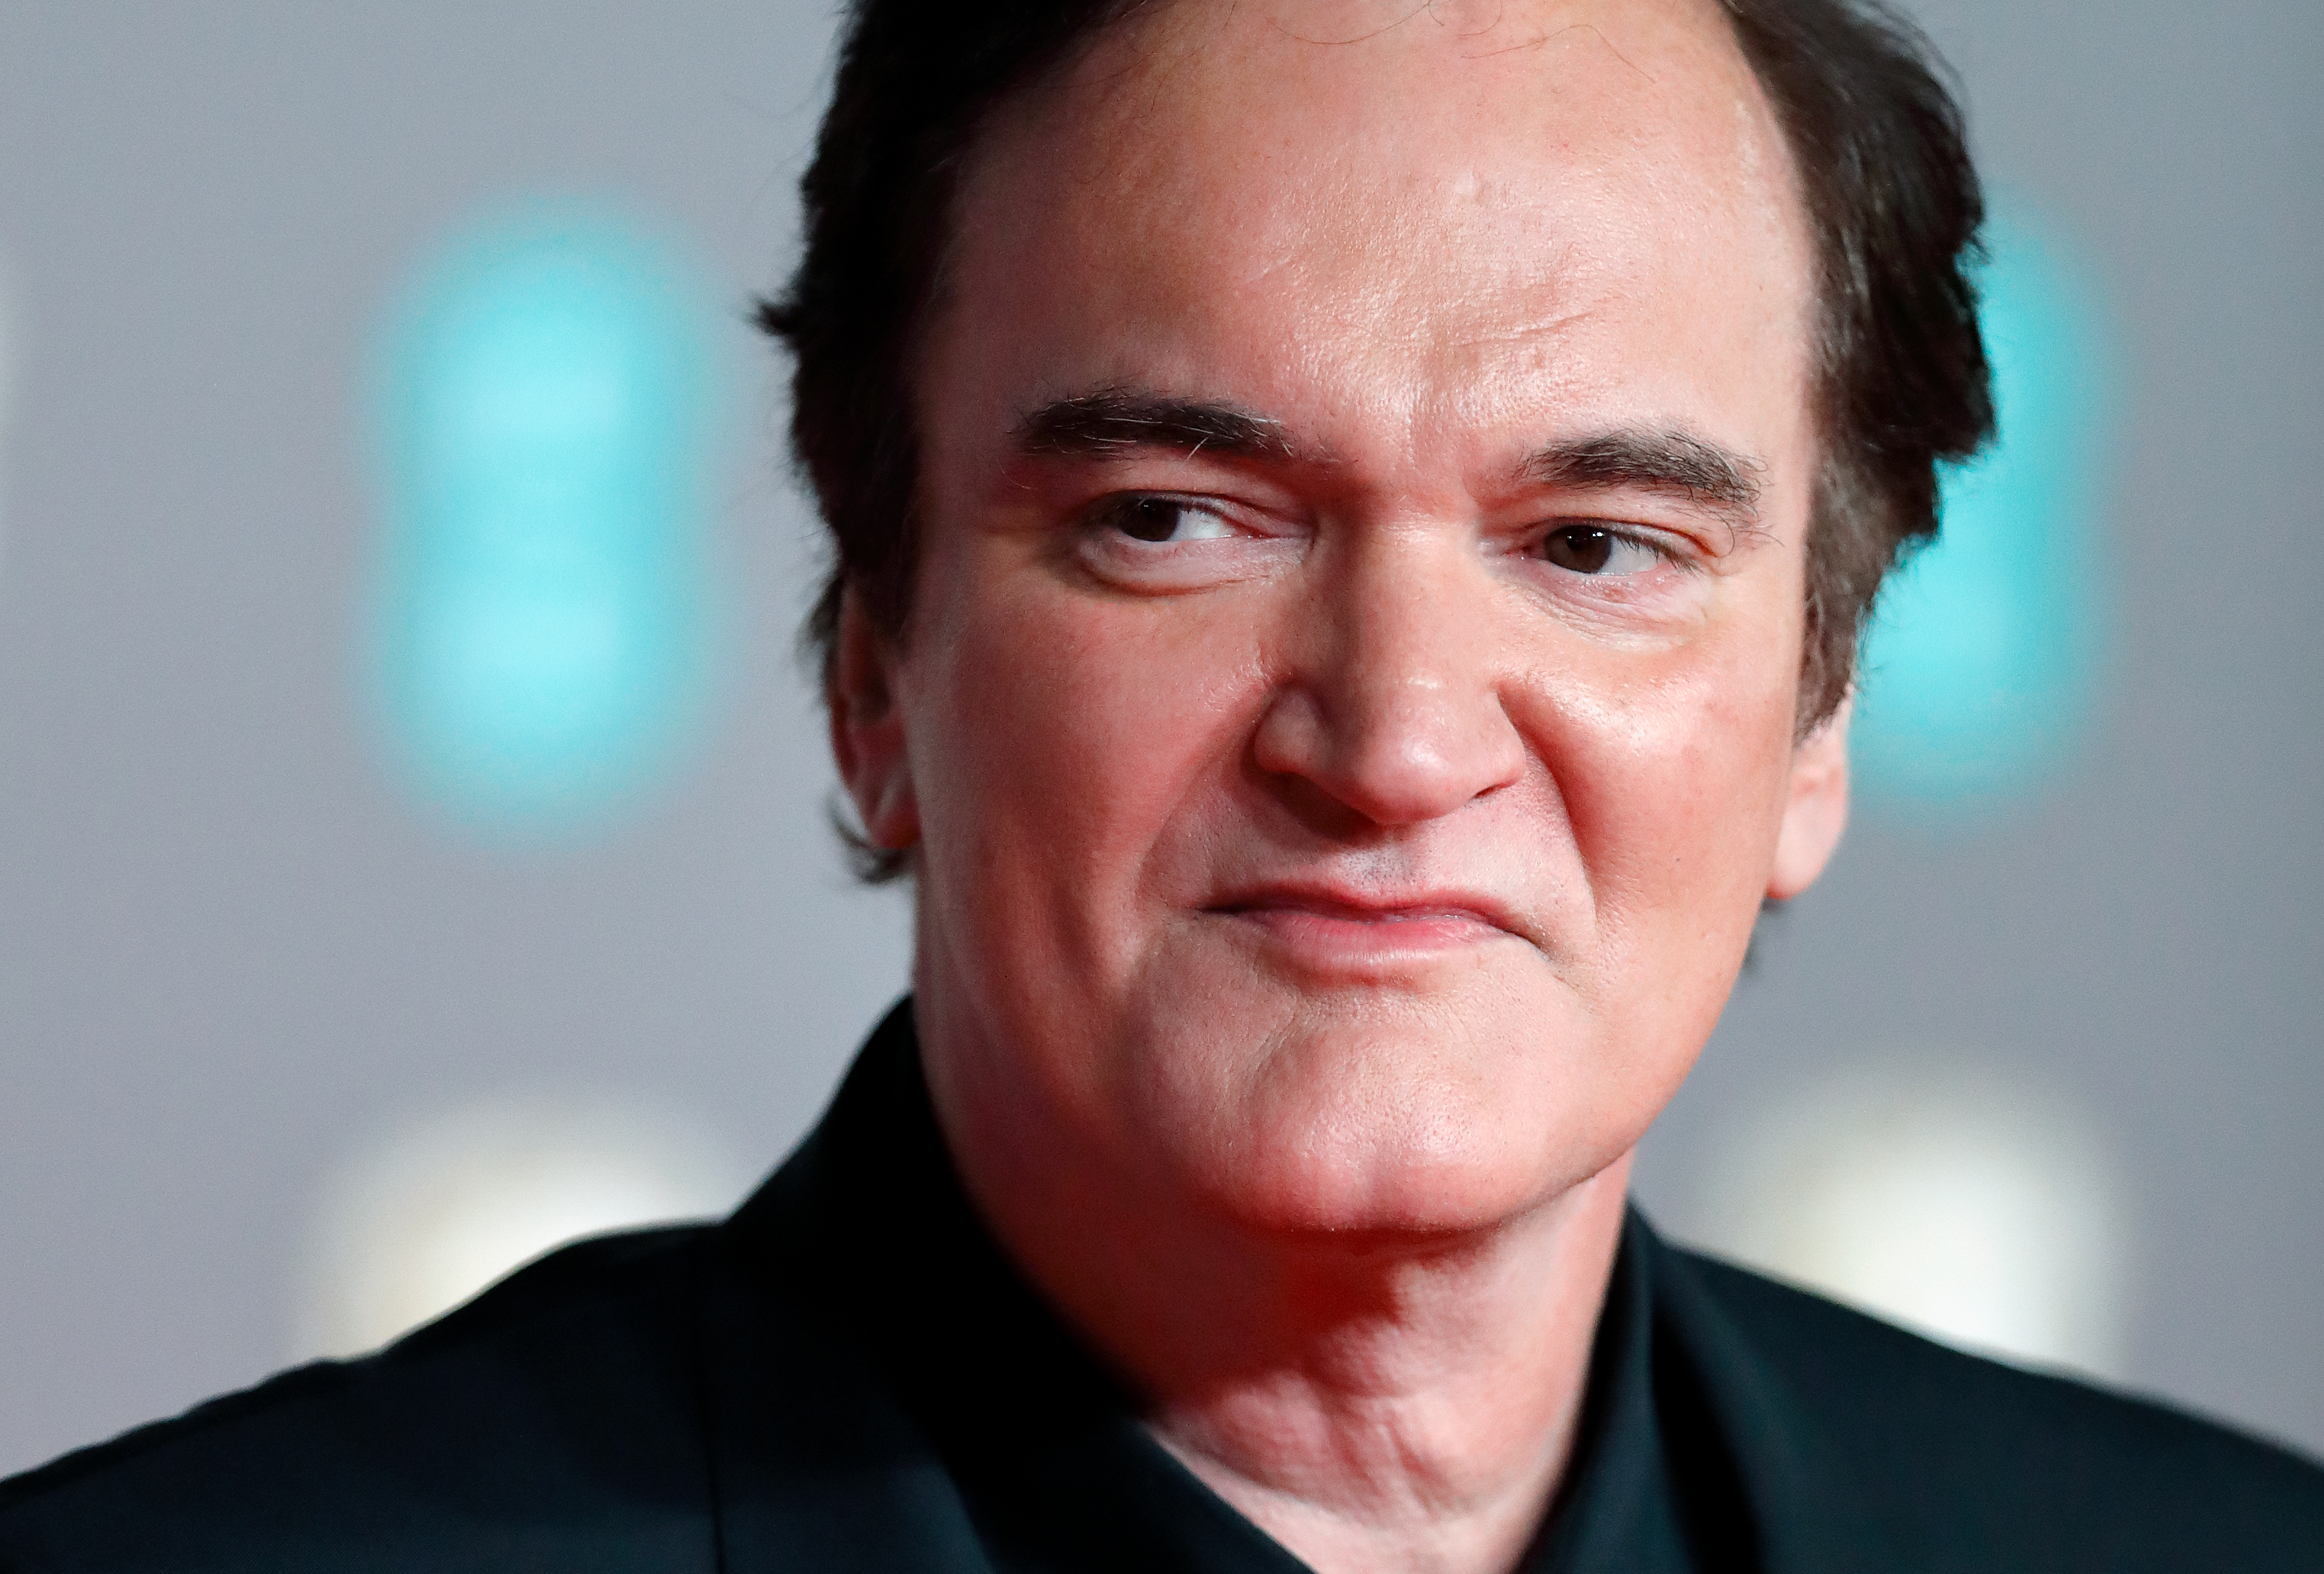 LONDON, UNITED KINGDOM - FEBRUARY 02: (EMBARGOED FOR PUBLICATION IN UK NEWSPAPERS UNTIL 24 HOURS AFTER CREATE DATE AND TIME) Quentin Tarantino attends the EE British Academy Film Awards 2020 at the Royal Albert Hall on February 2, 2020 in London, England. (Photo by Max Mumby/Indigo/Getty Images)